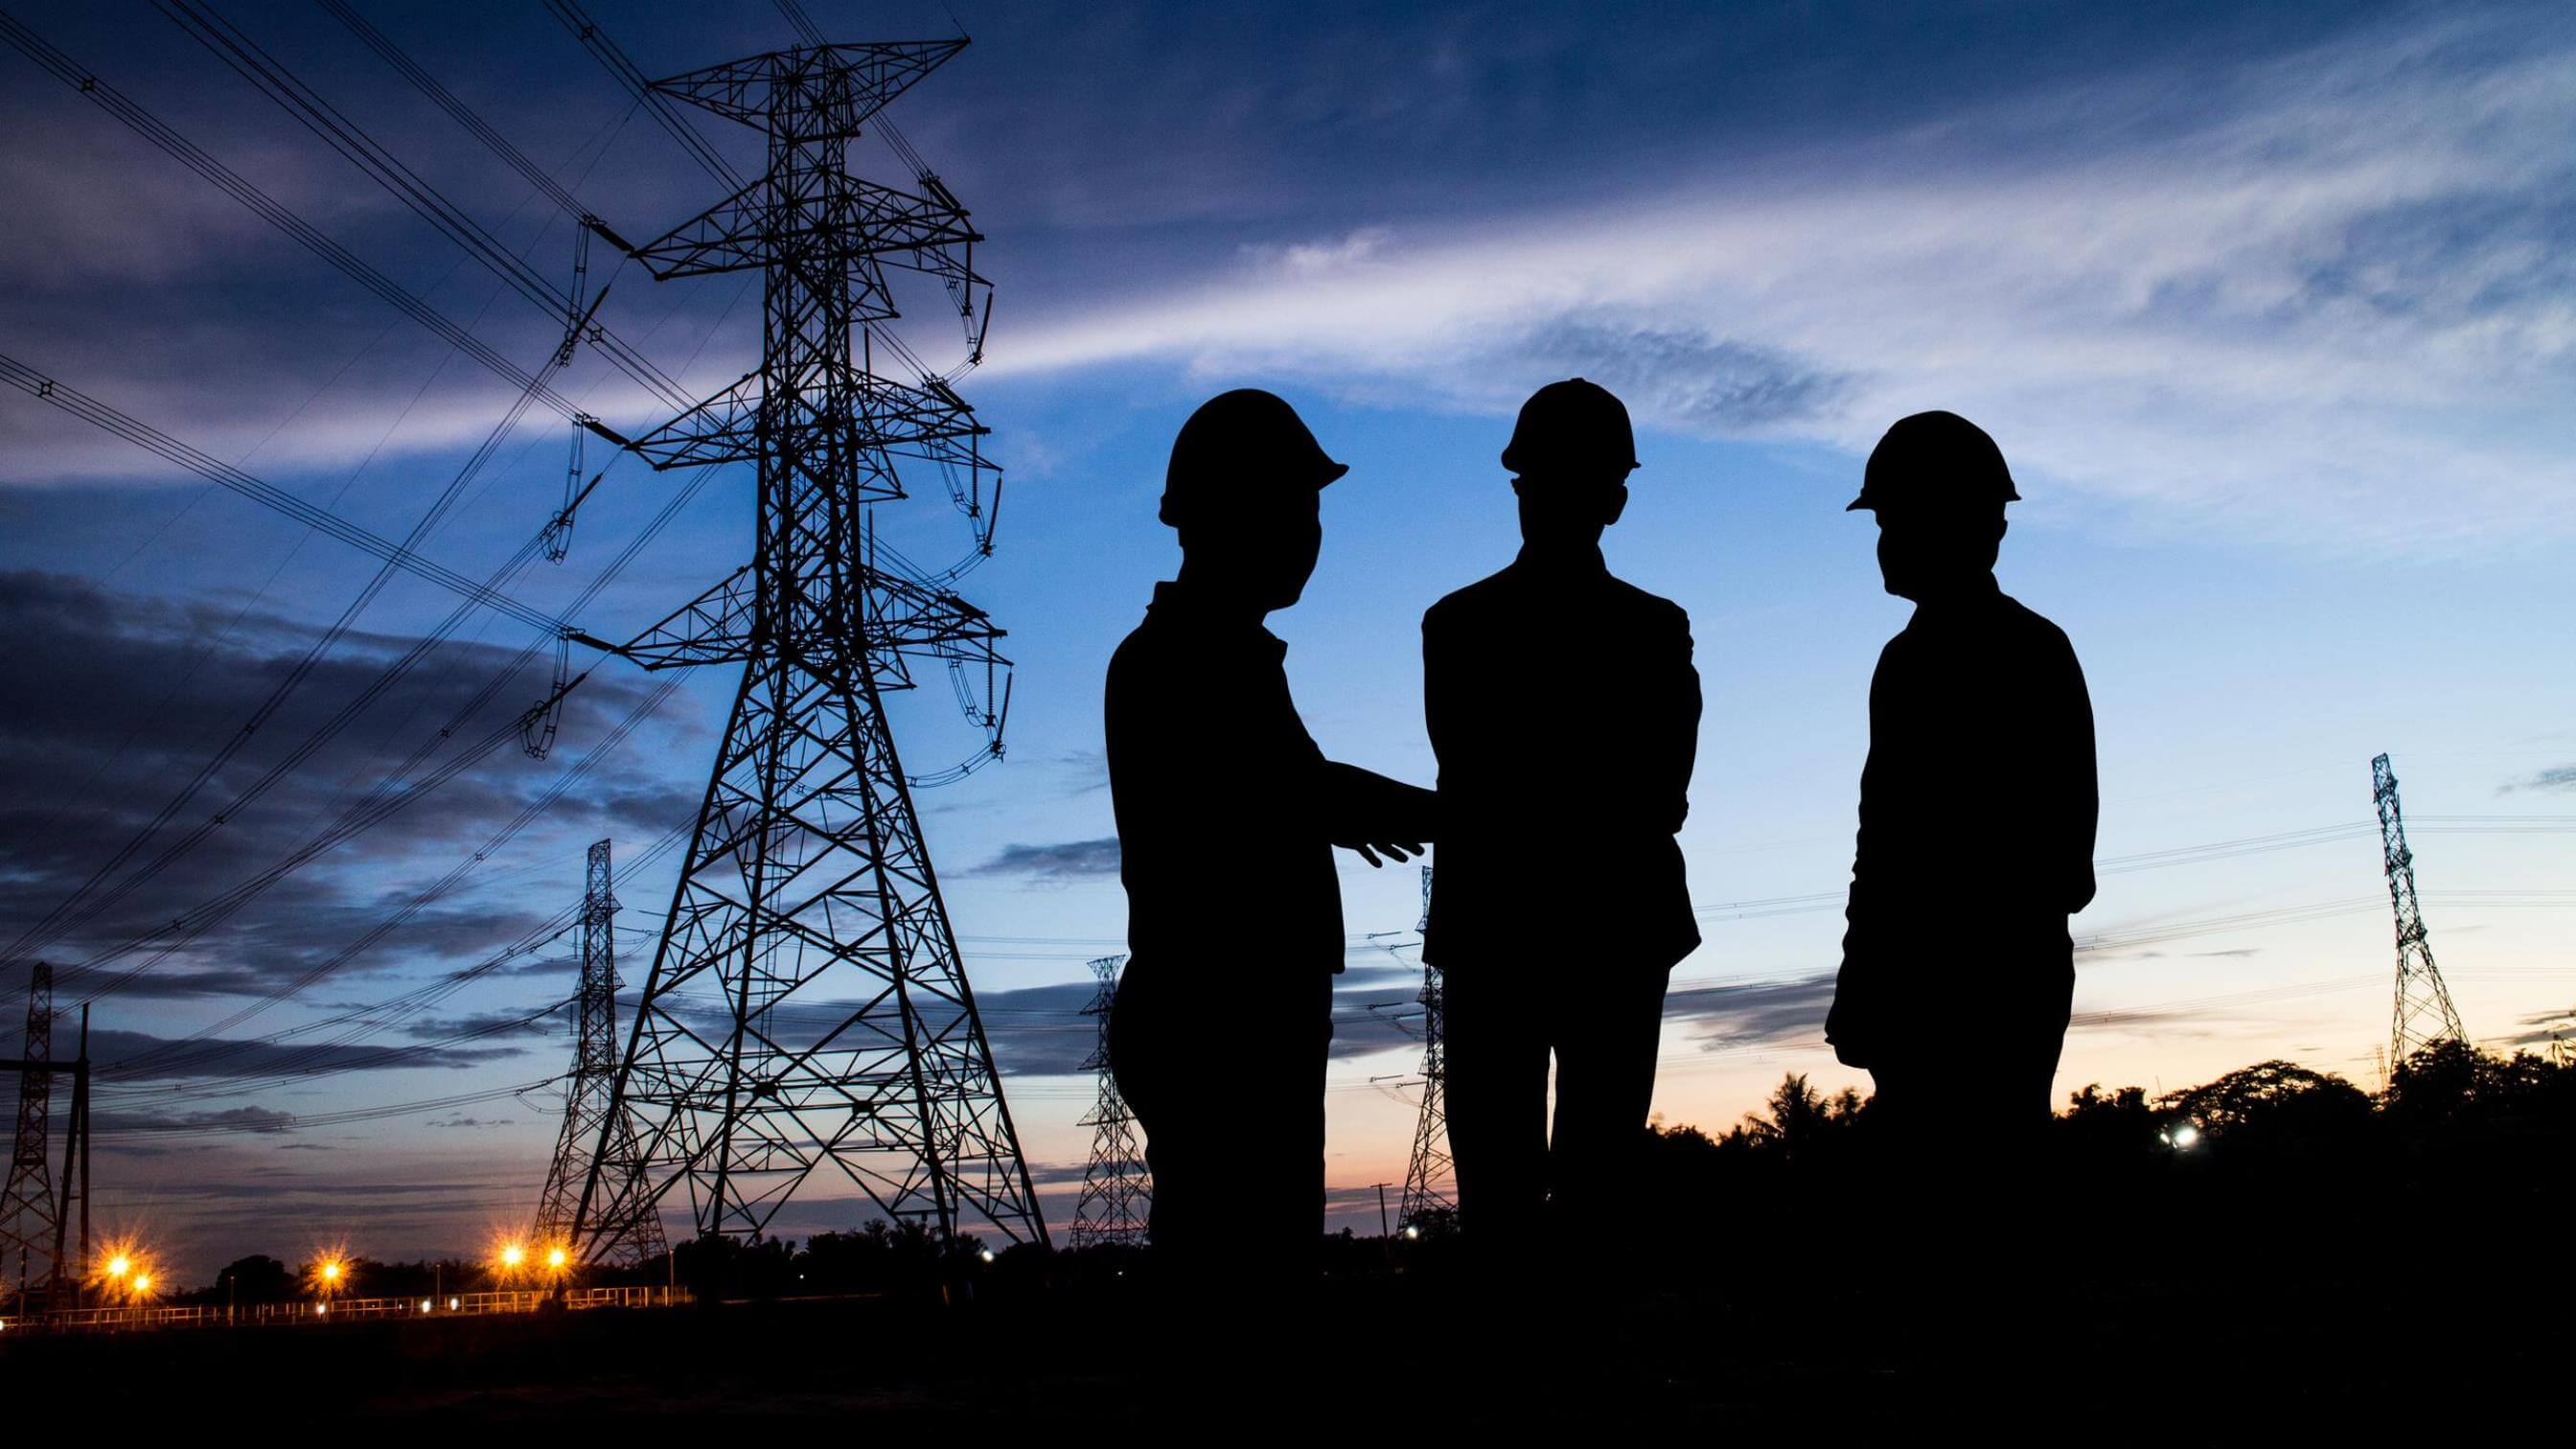 Silouette of three men in evening in front of transmission tower